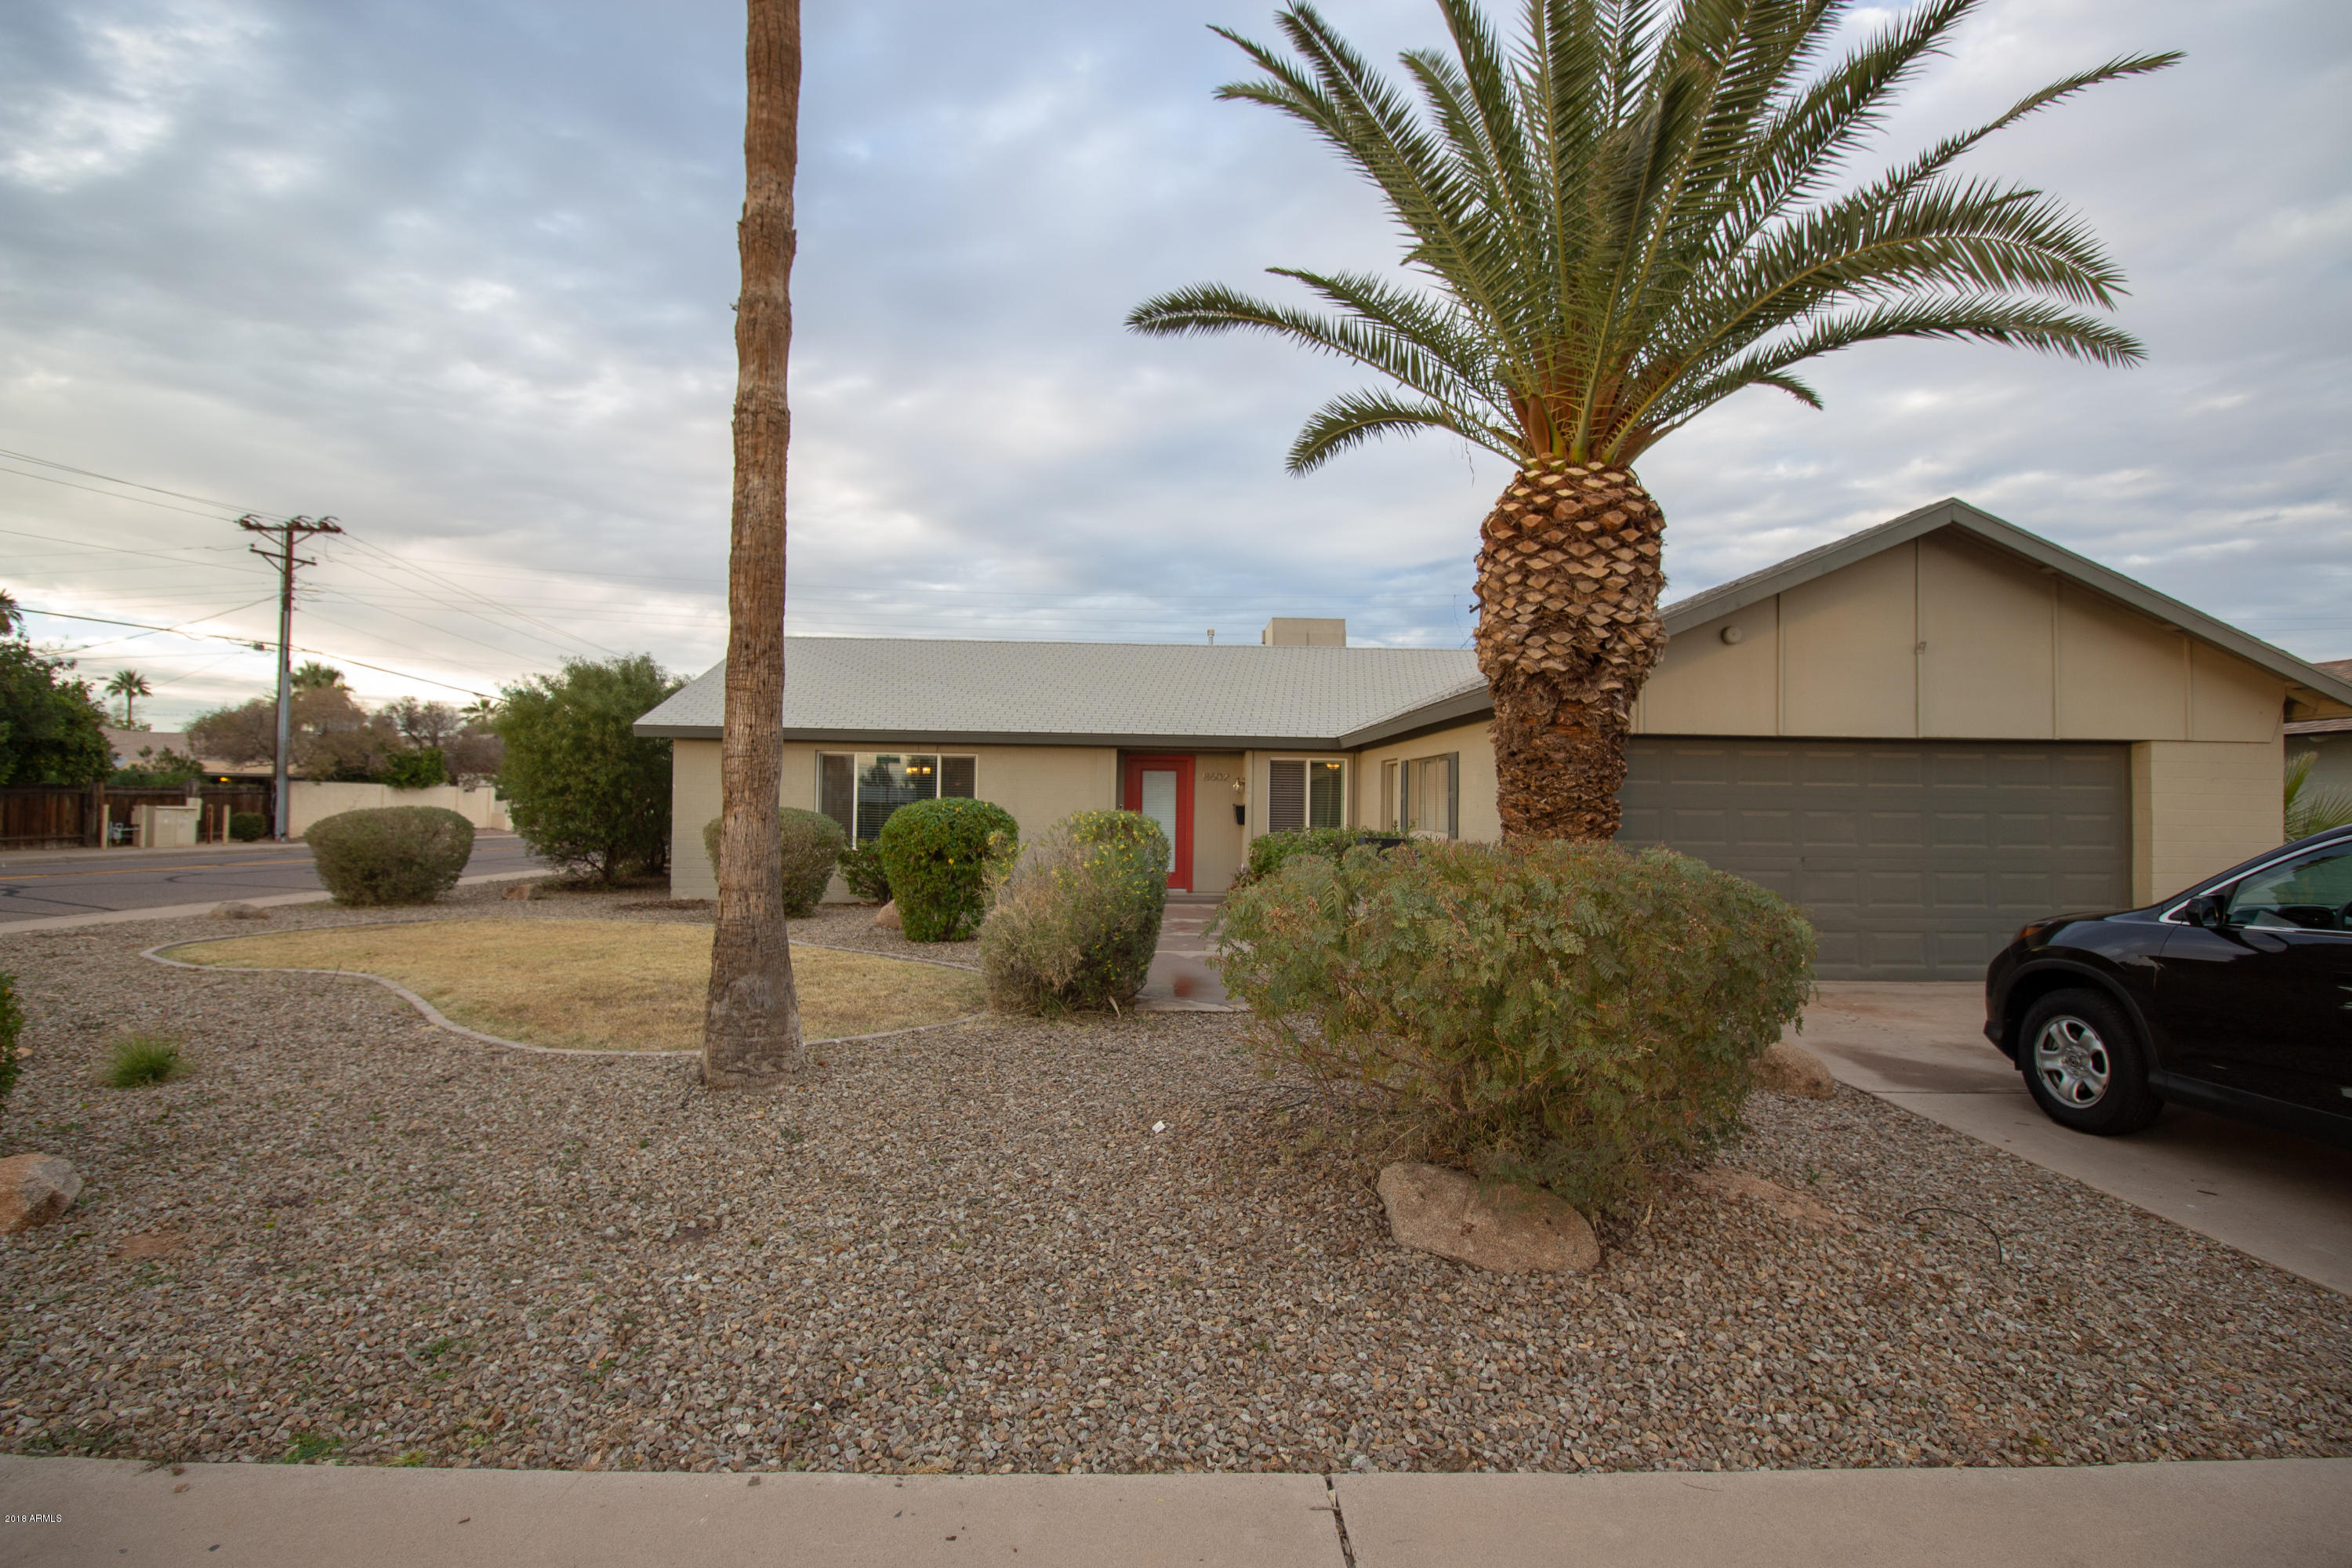 8602 E PLAZA Avenue, Scottsdale, Arizona